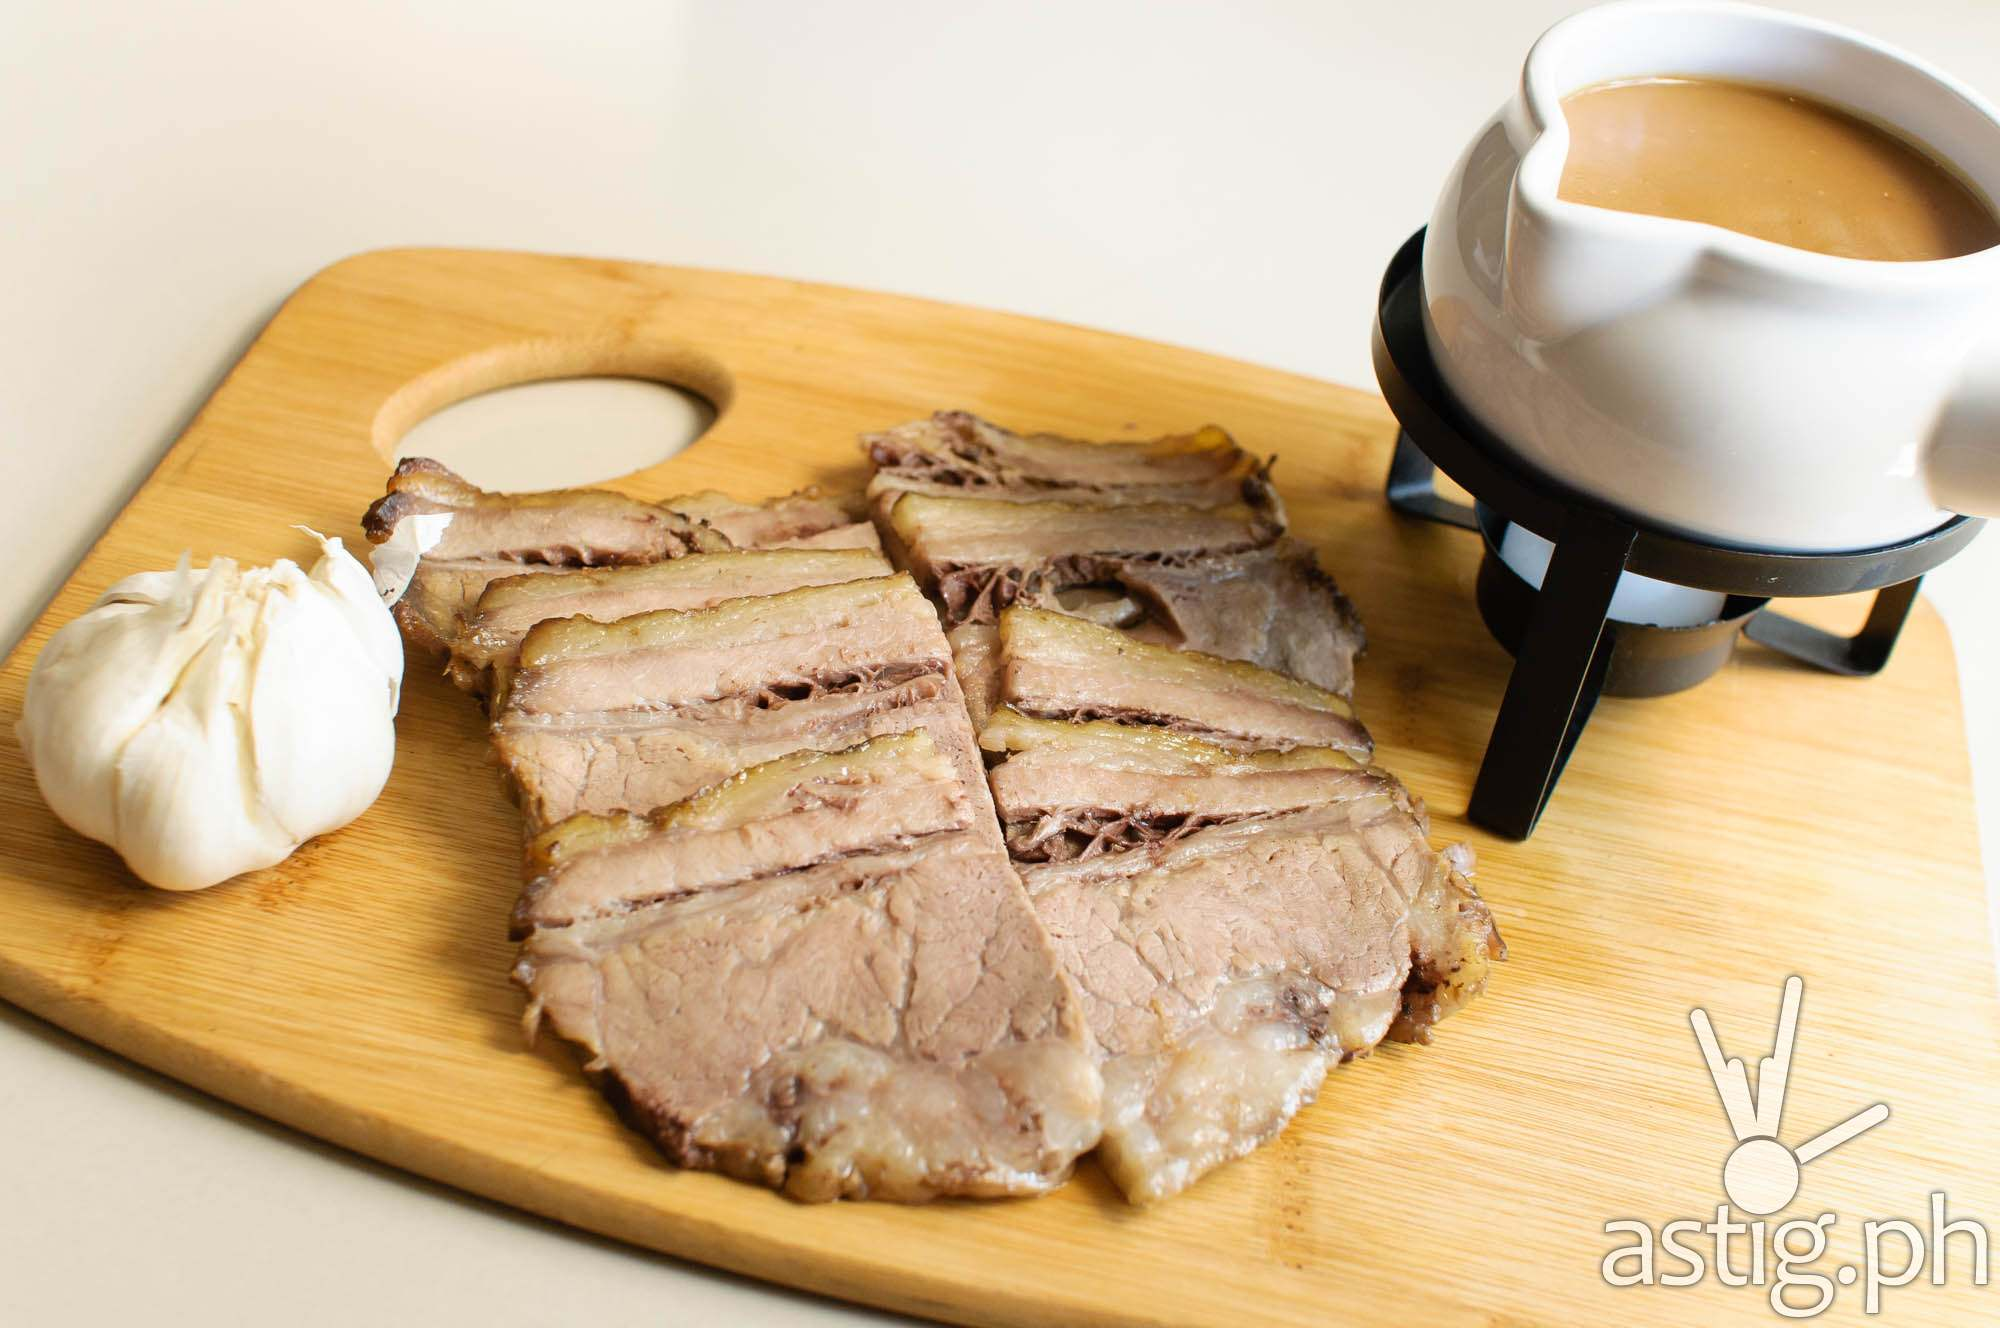 The famous roast beef of The Round Table Kapitolyo